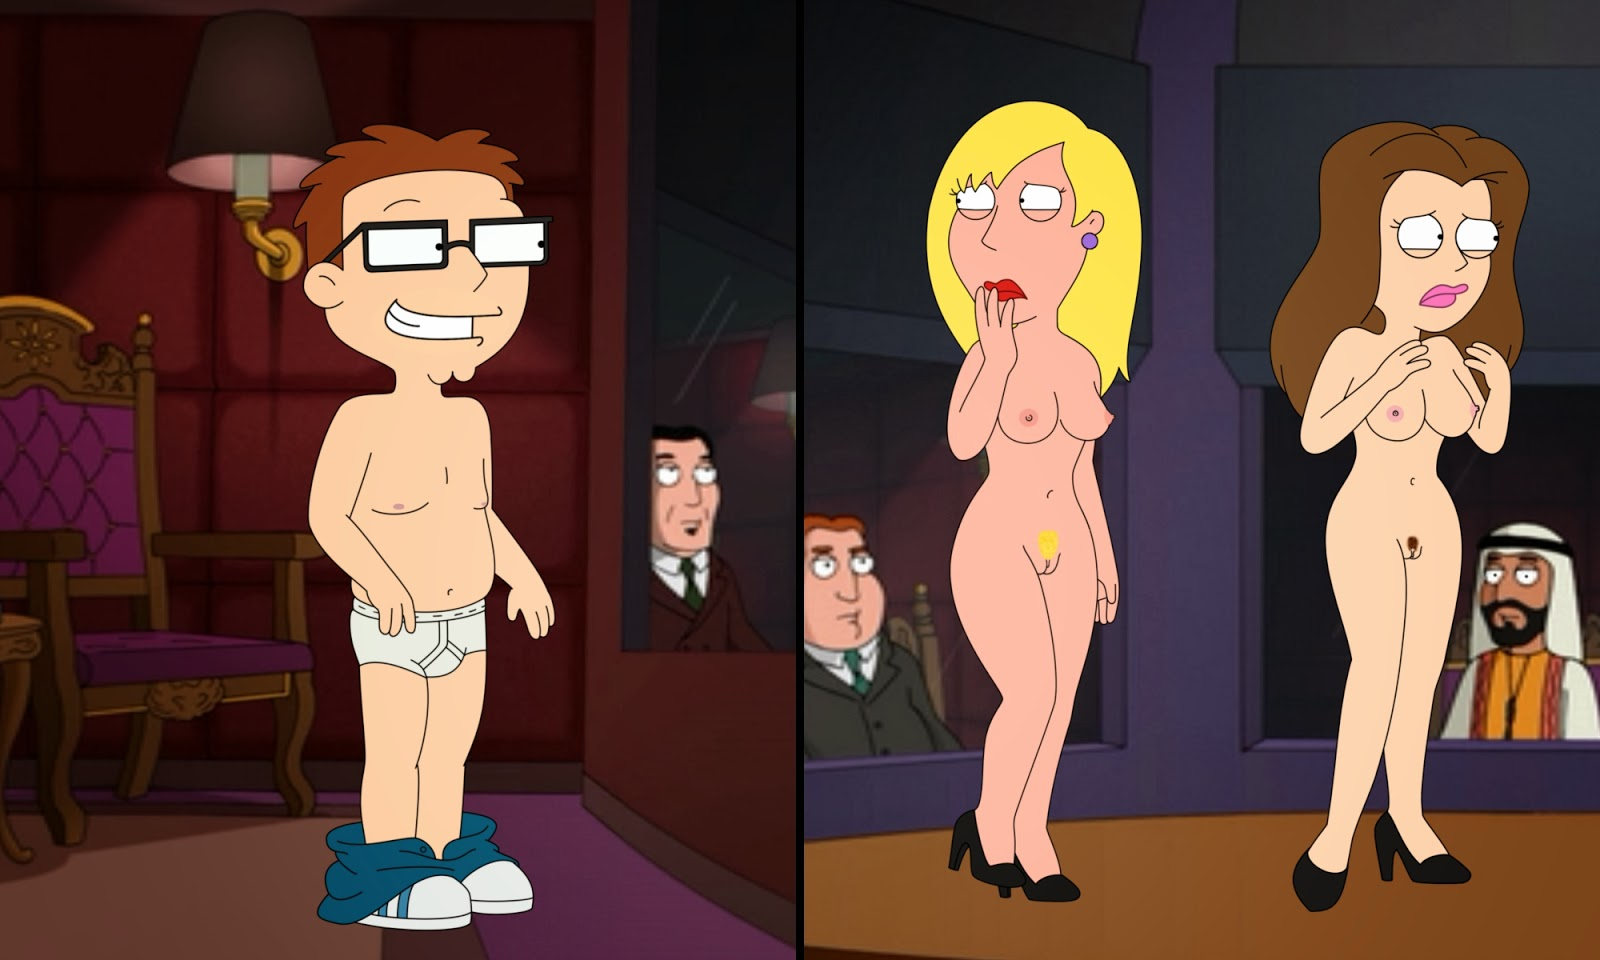 Regret, American dad naked hot girls